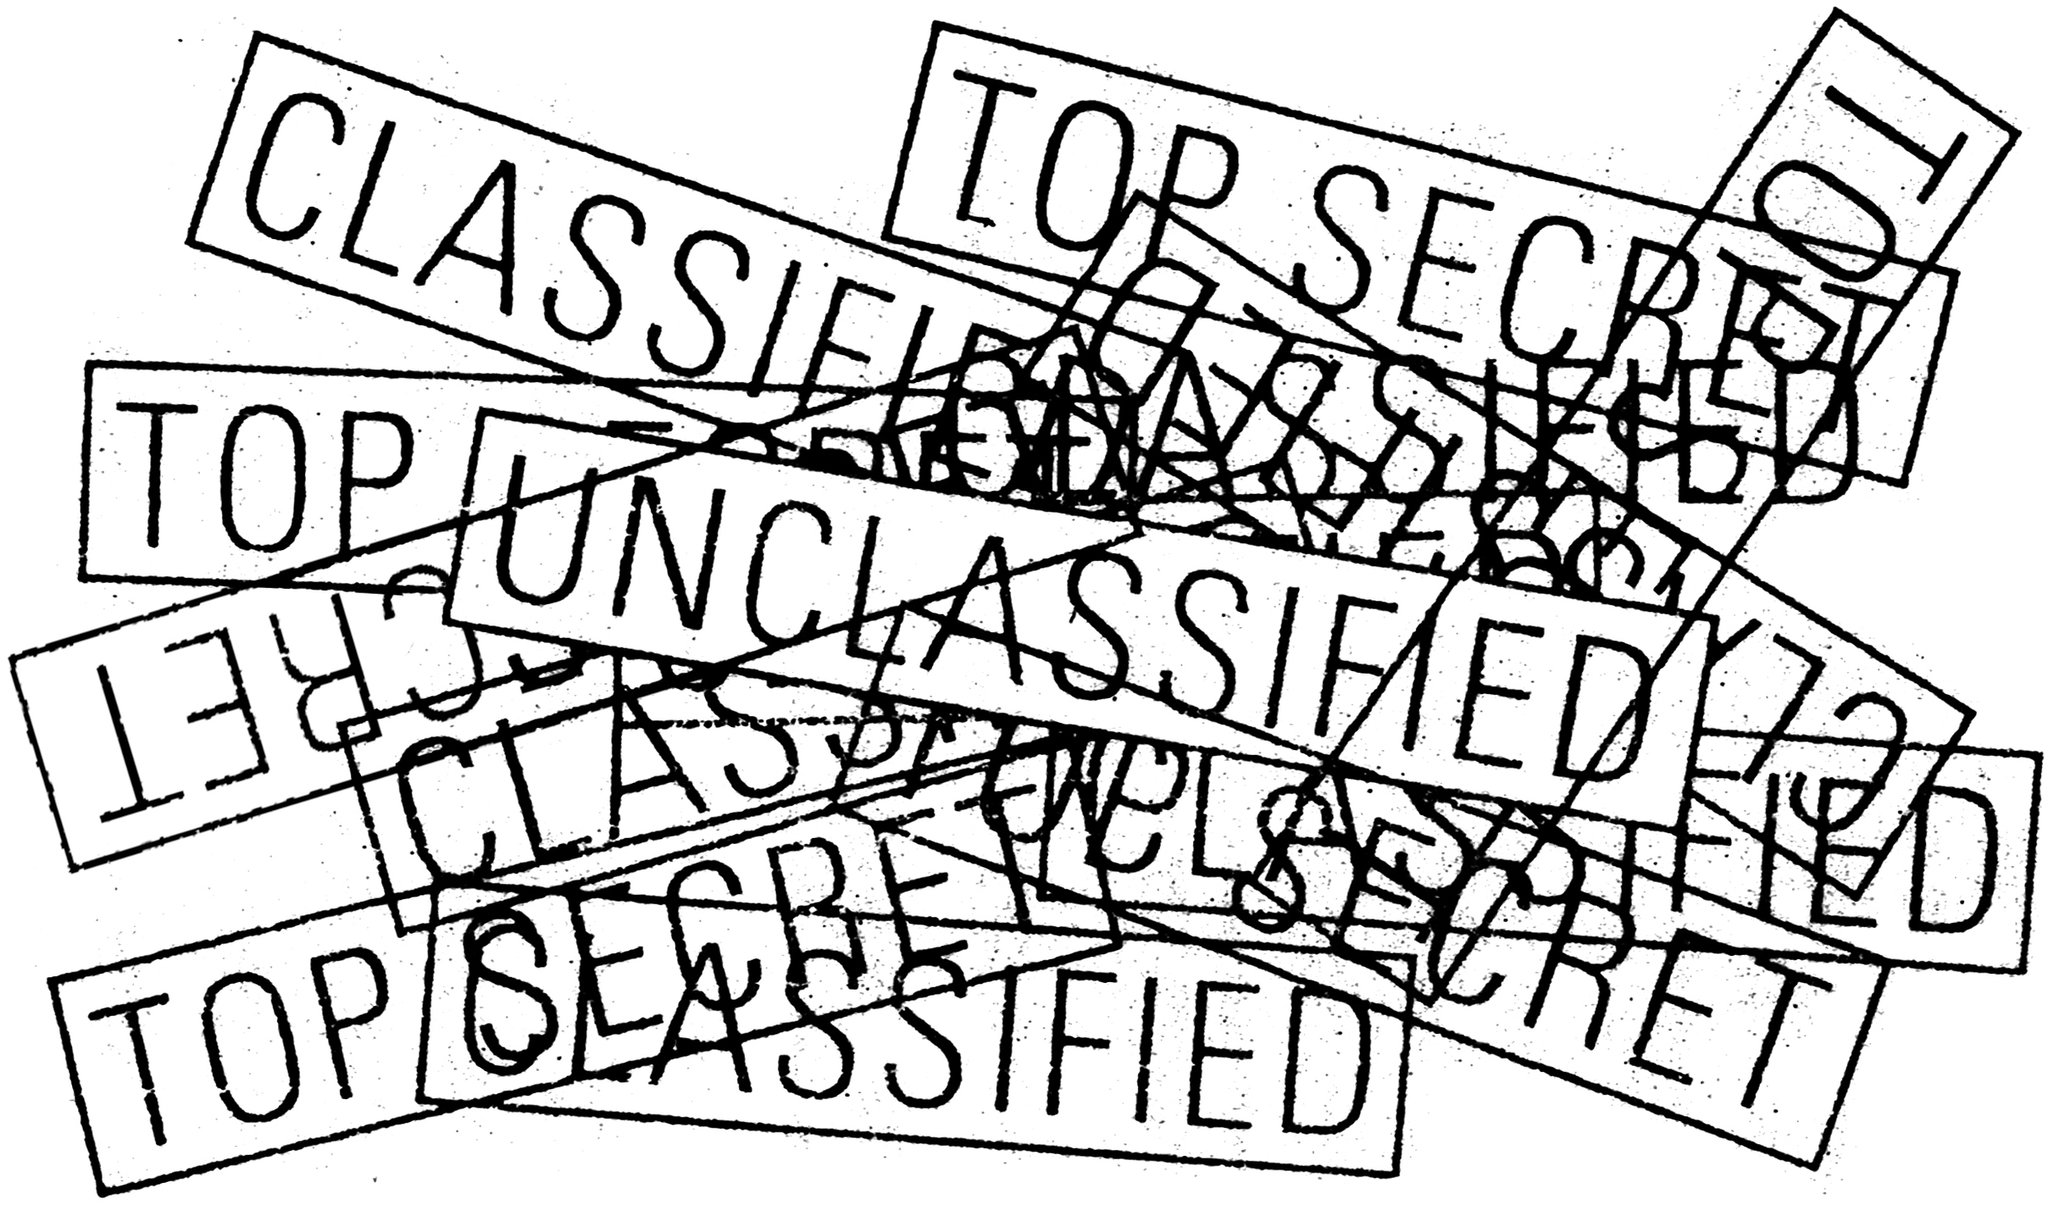 The Broken System of Classifying Government Documents